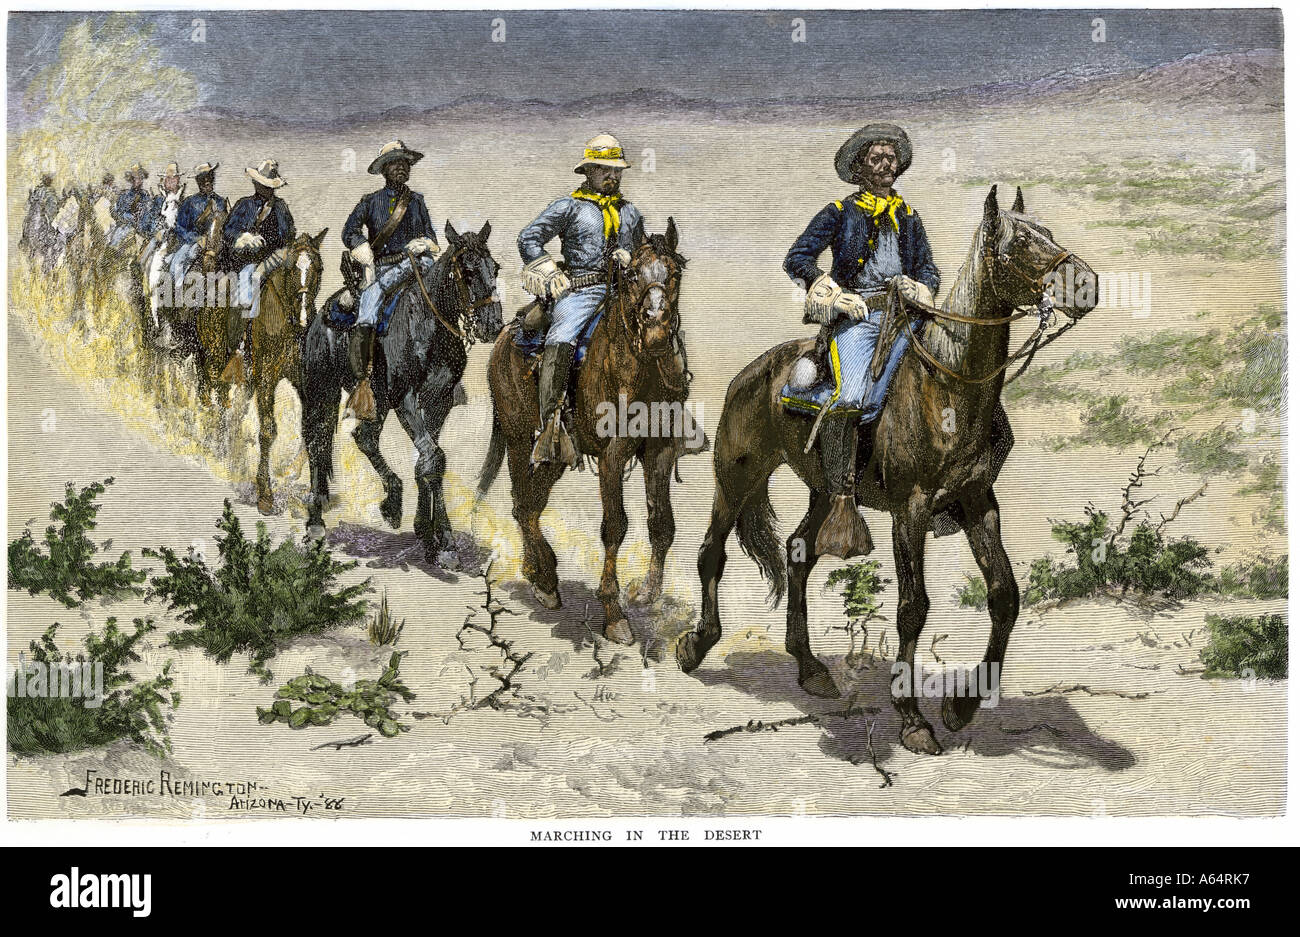 African American buffalo soldiers marching in the Arizona desert during Apache wars 1880s. Hand-colored woodcut of a Frederic Remington illustration - Stock Image